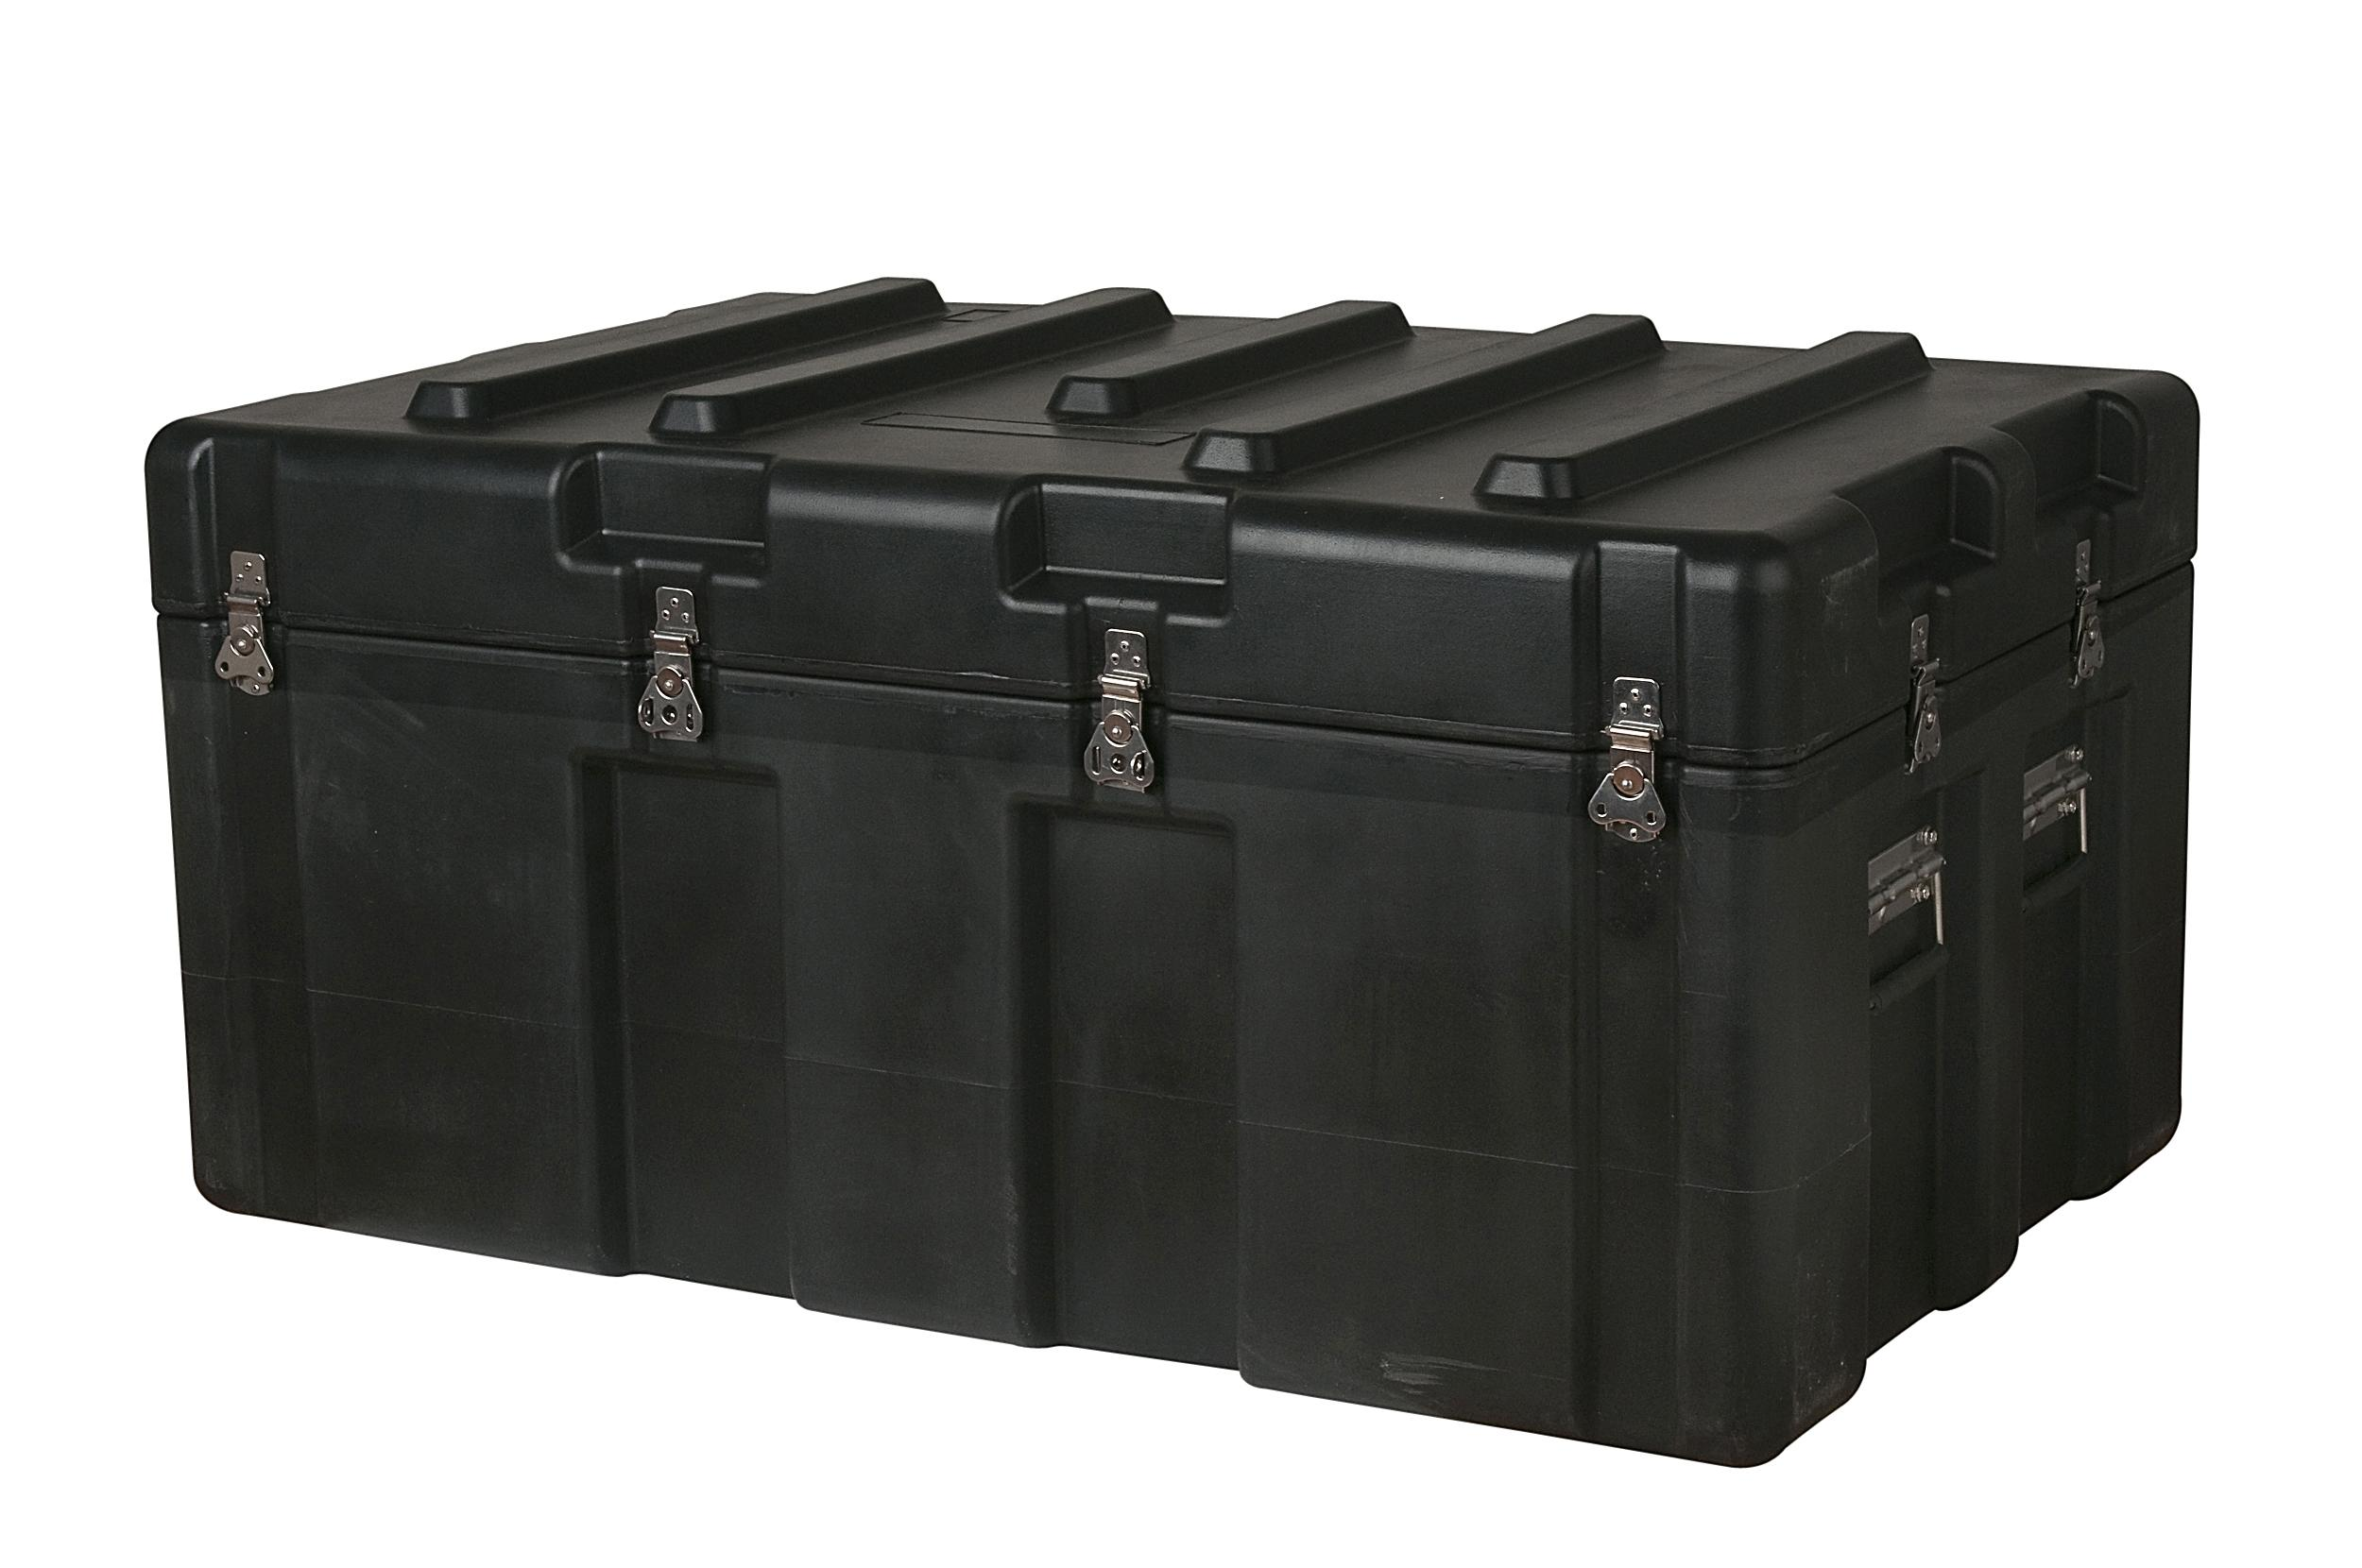 Large Plastic Storage Boxes Tool Storage Large Plastic Tool Storage Boxes